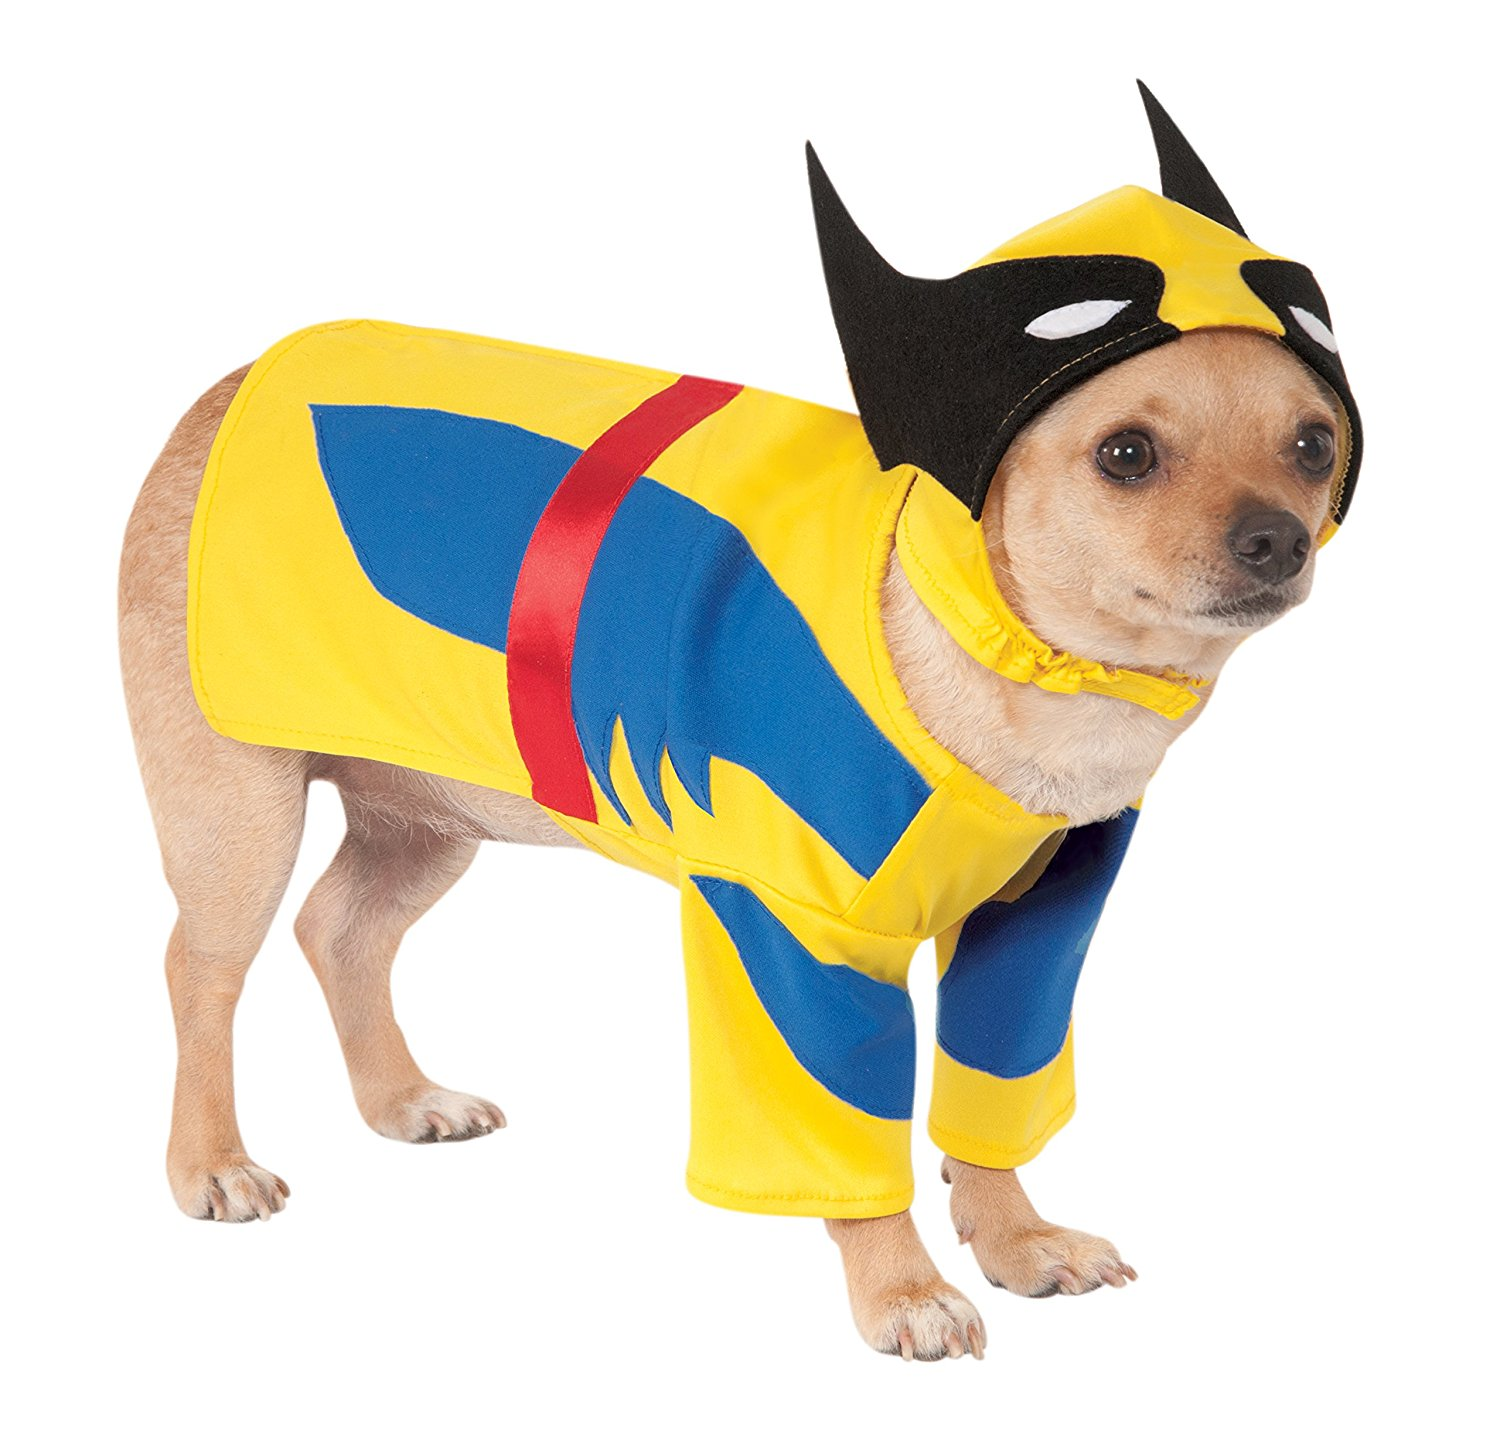 Rubies Costume Company Marvel Classic/Marvel Universe Wolverine Pet Costume  sc 1 st  Chihuahua Kingdom & Rubies Costume Company Marvel Classic/Marvel Universe Wolverine Pet ...